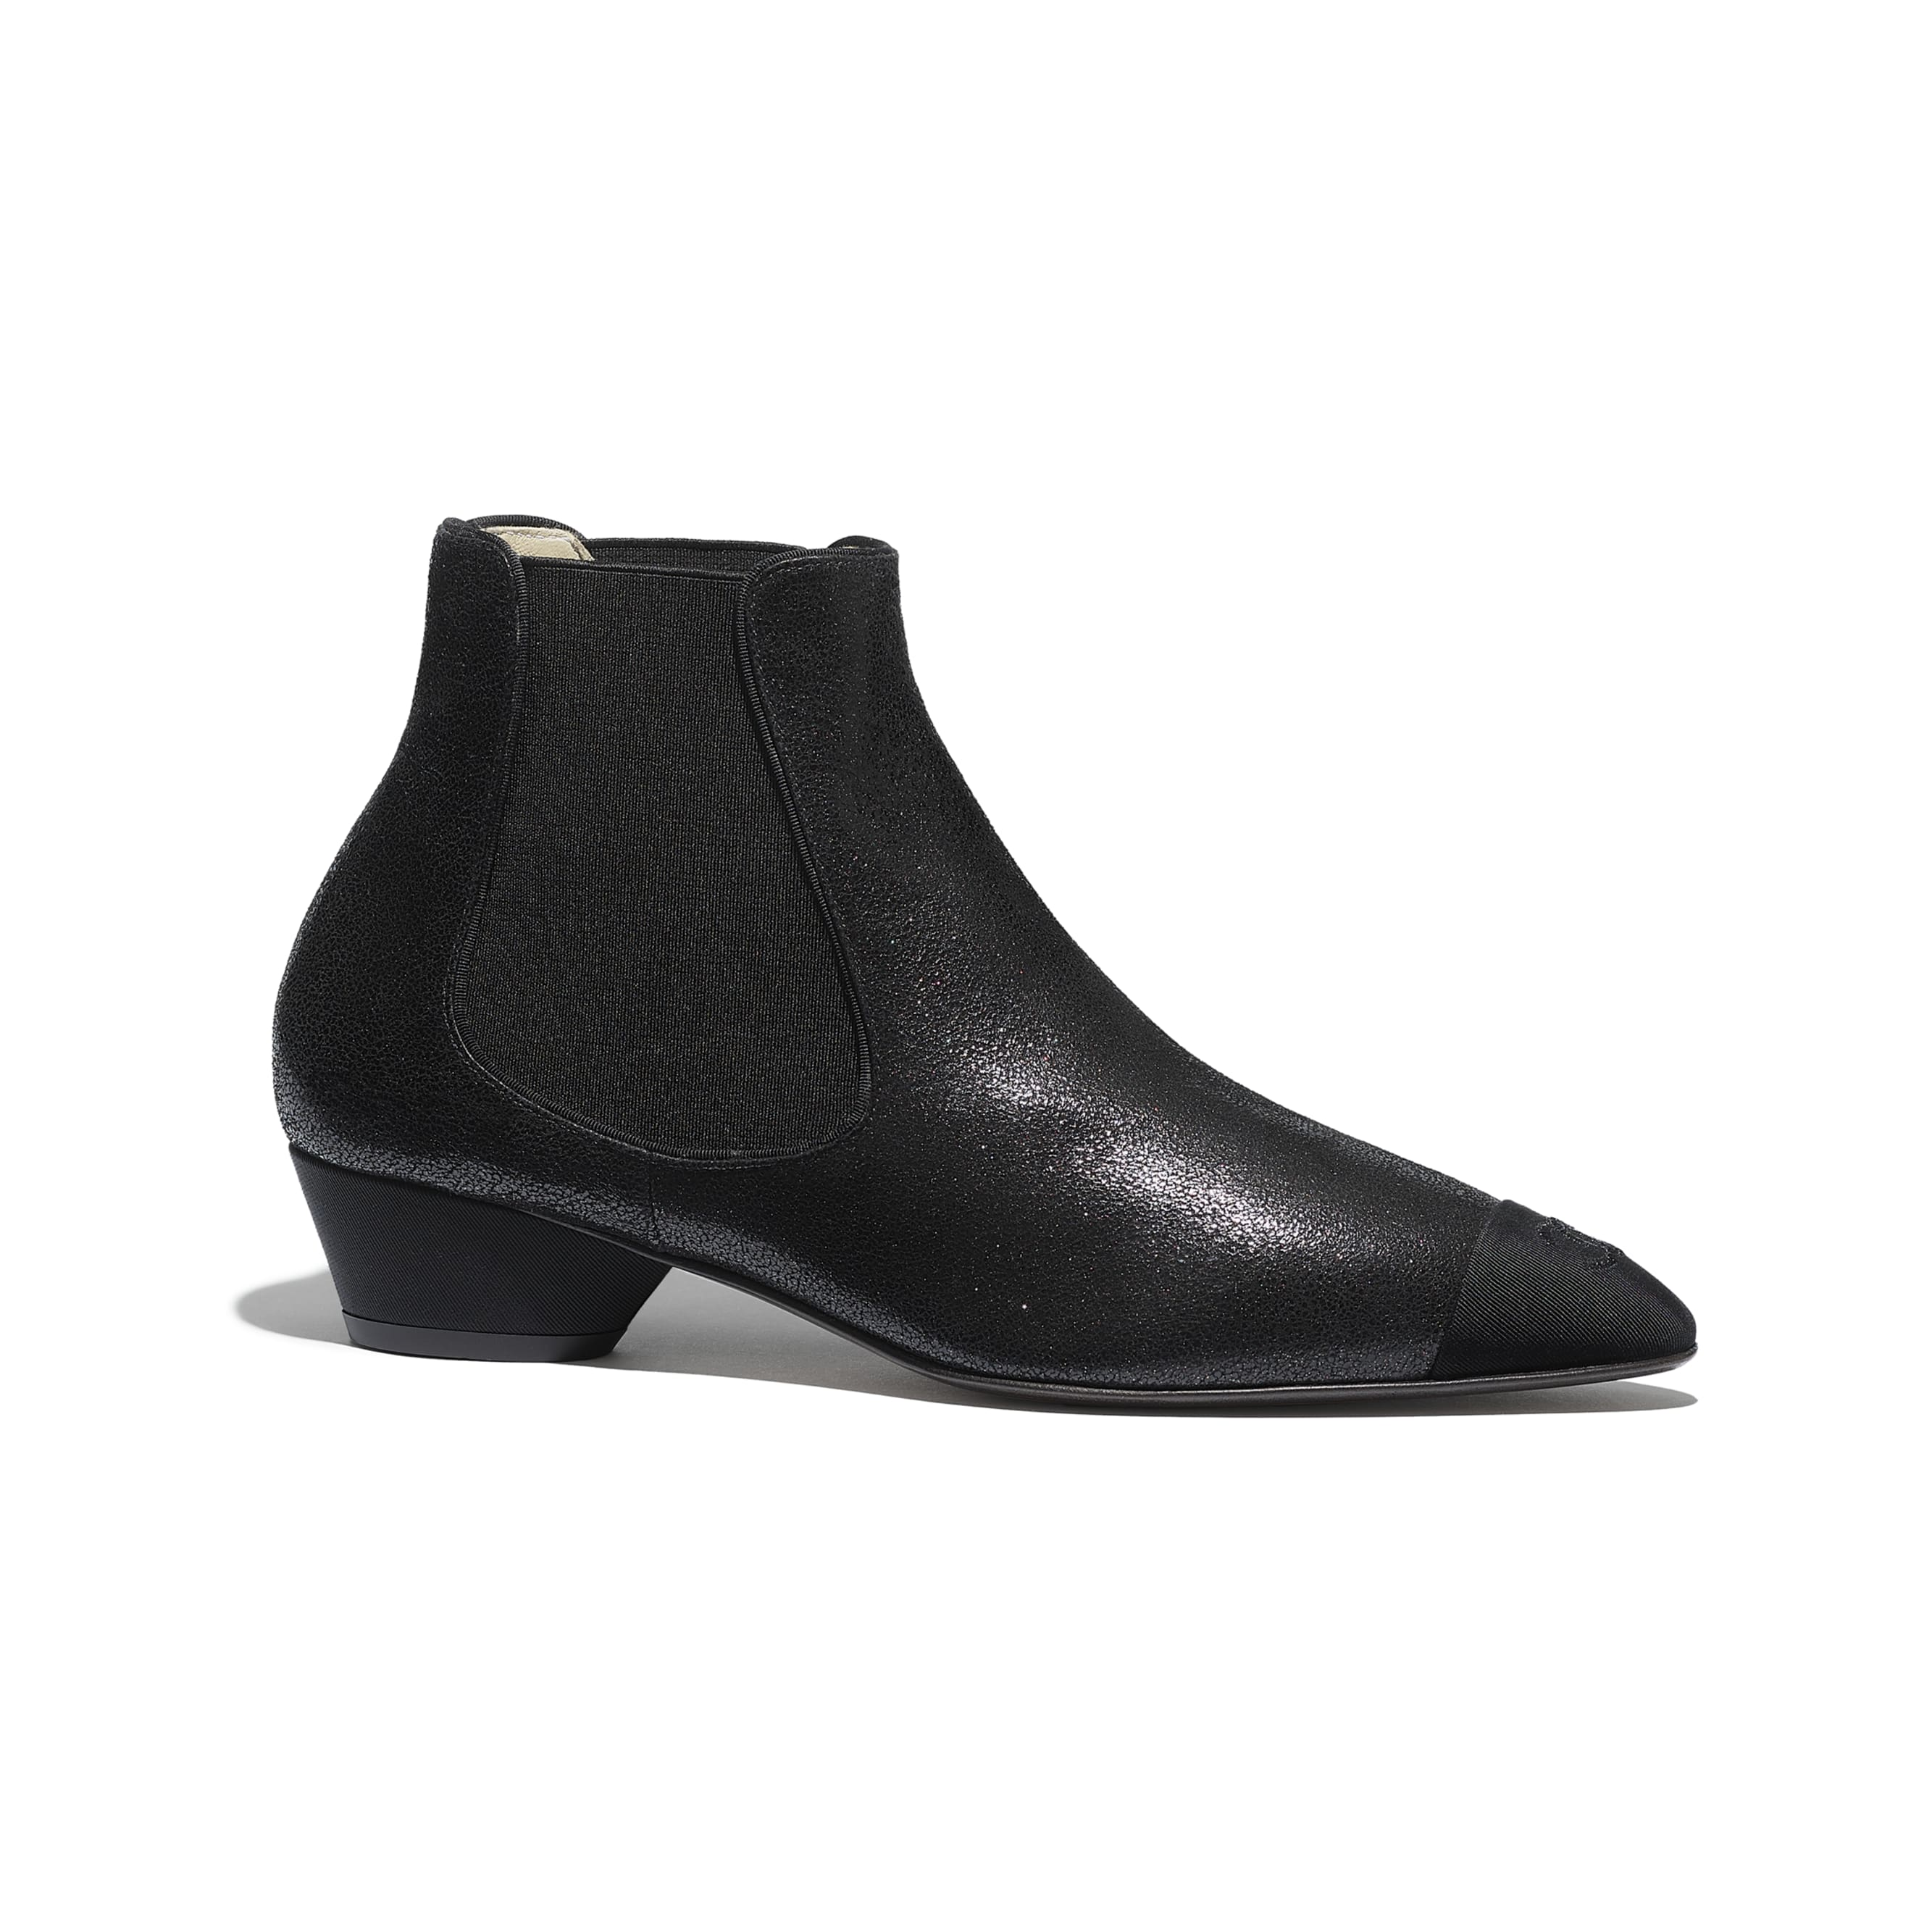 Ankle Boots - Black - Goatskin & Grosgrain - Default view - see standard sized version